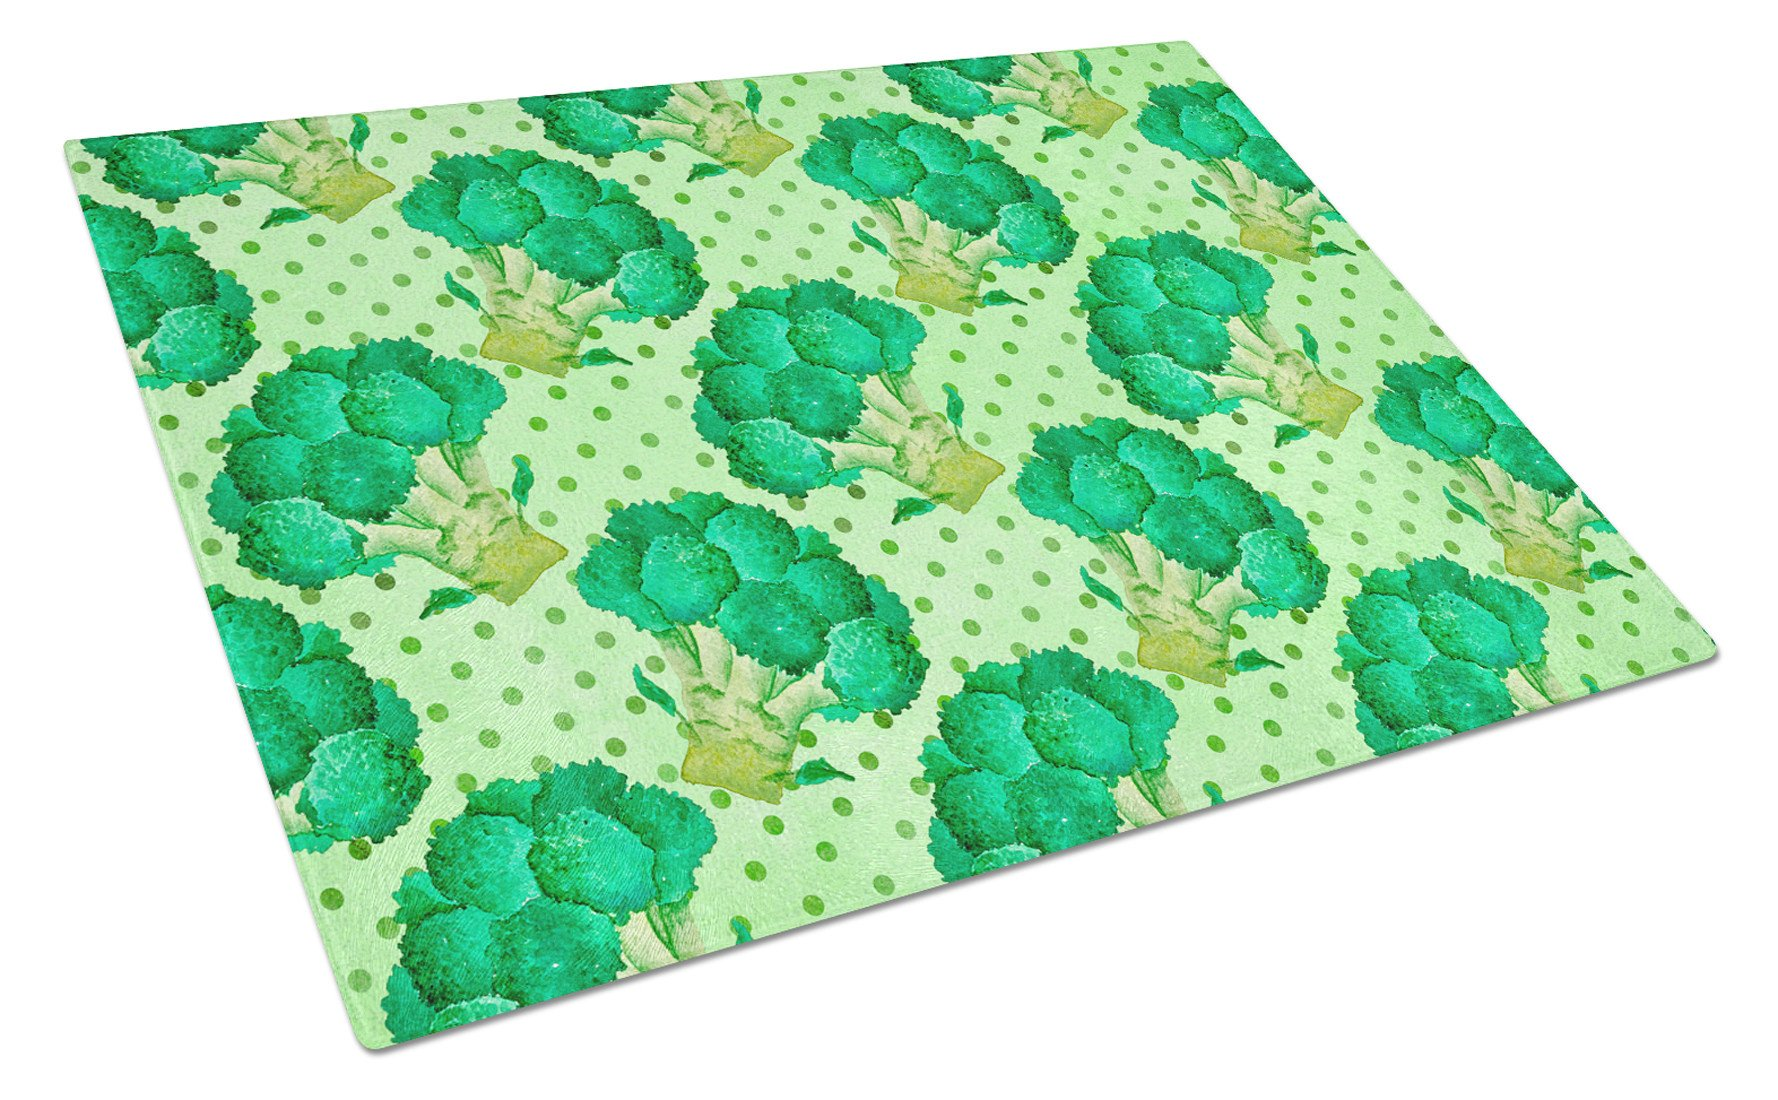 Watercolor Broccoli Glass Cutting Board Large BB7570LCB by Caroline's Treasures